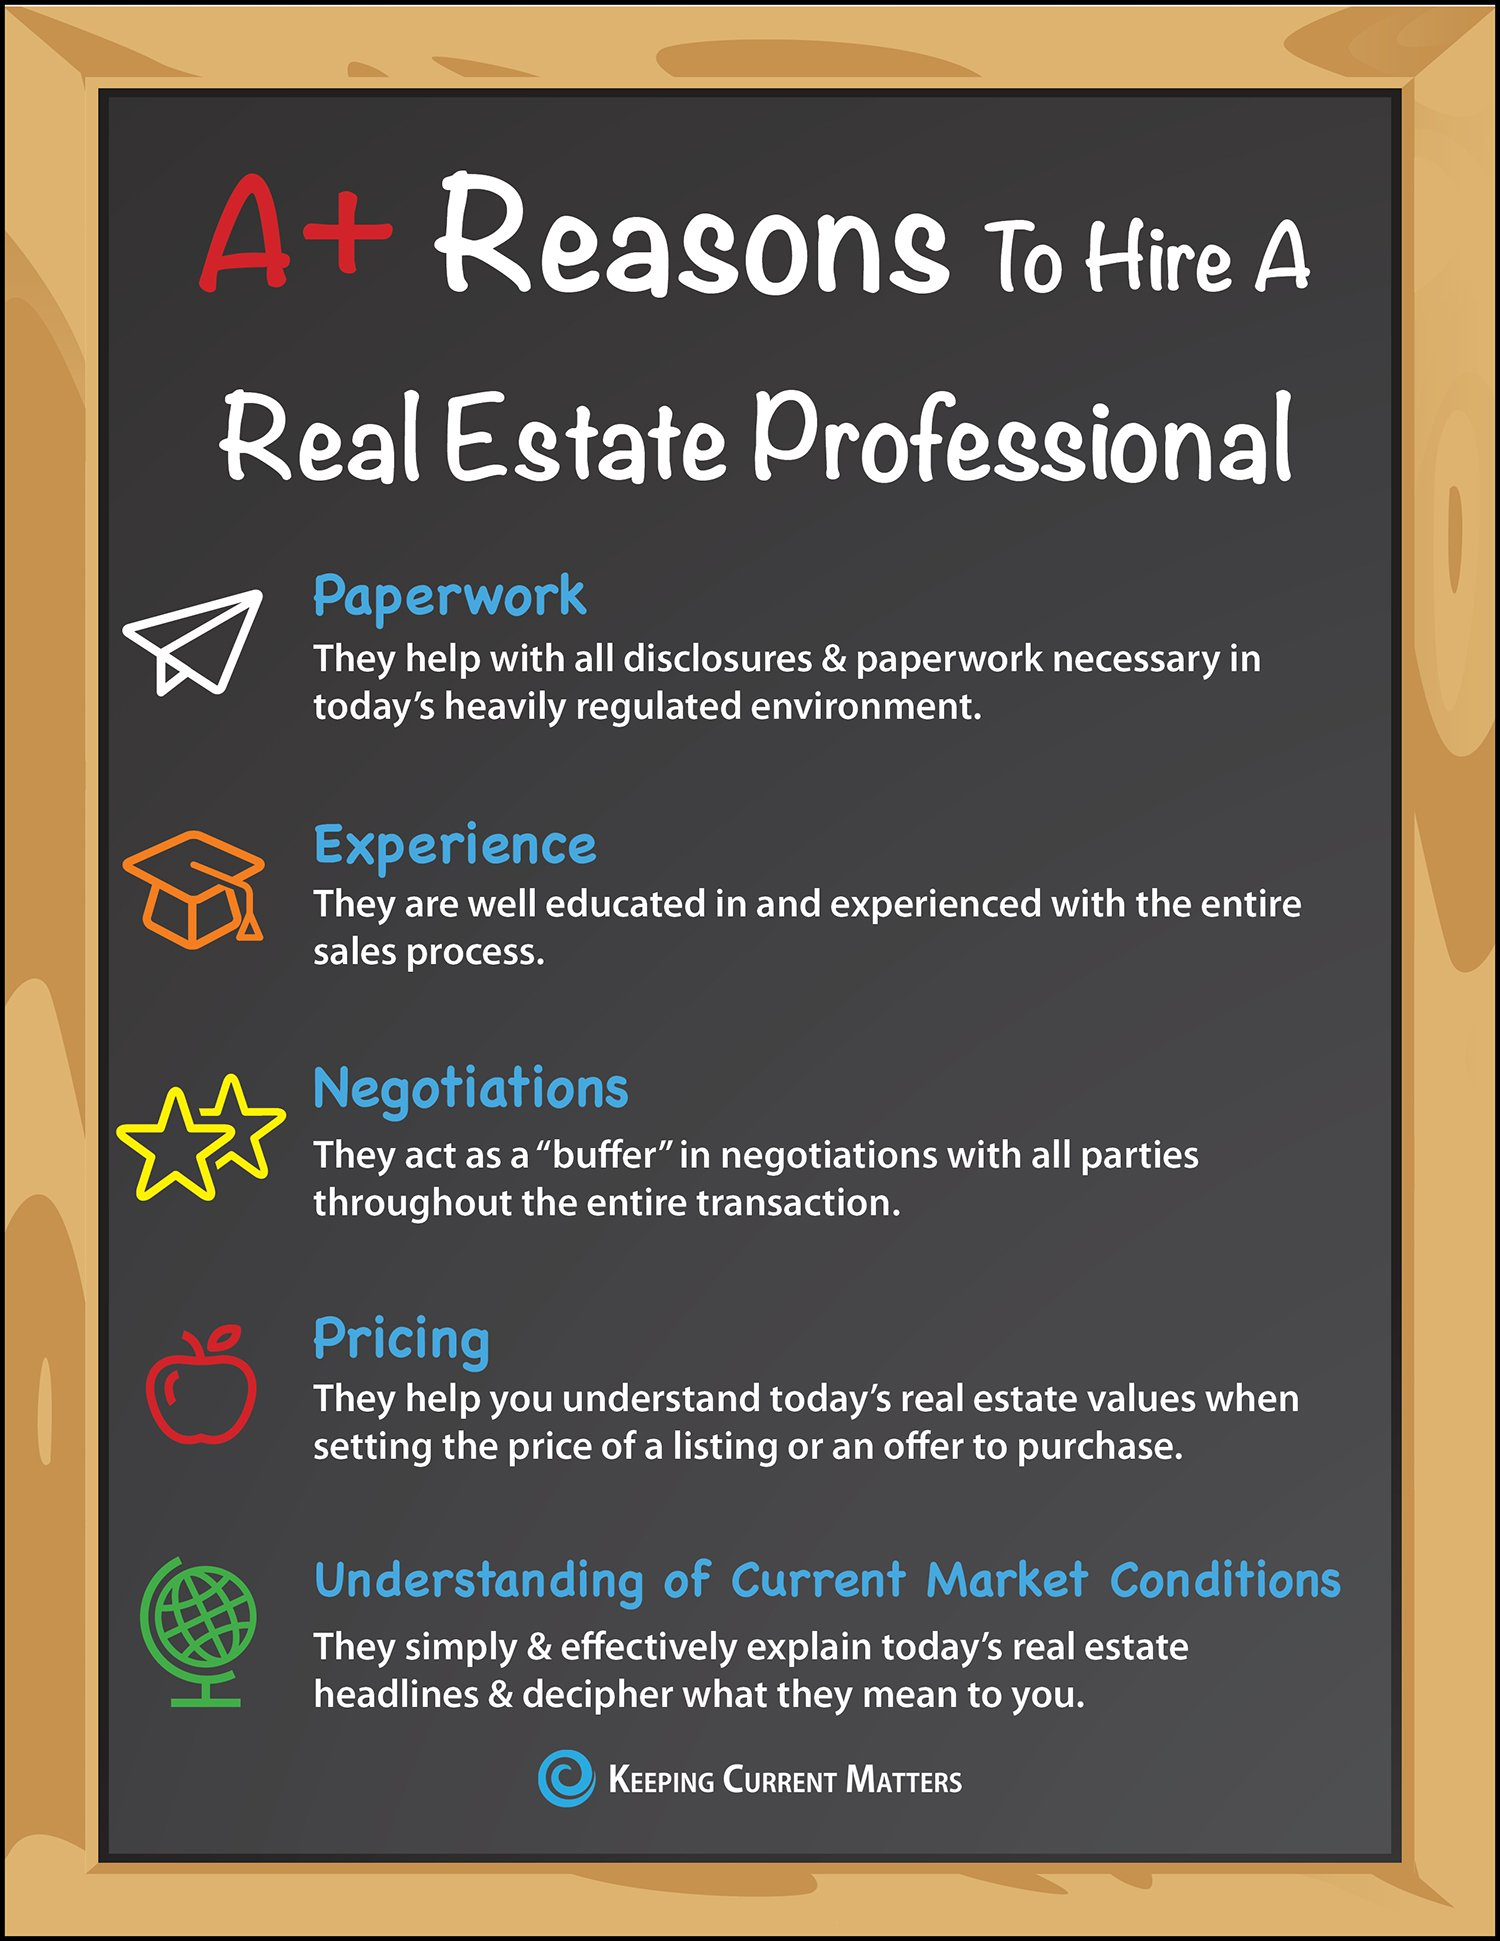 Want to Get an A? Hire A Real Estate Pro [INFOGRAPHIC] | Keeping Current Mattes